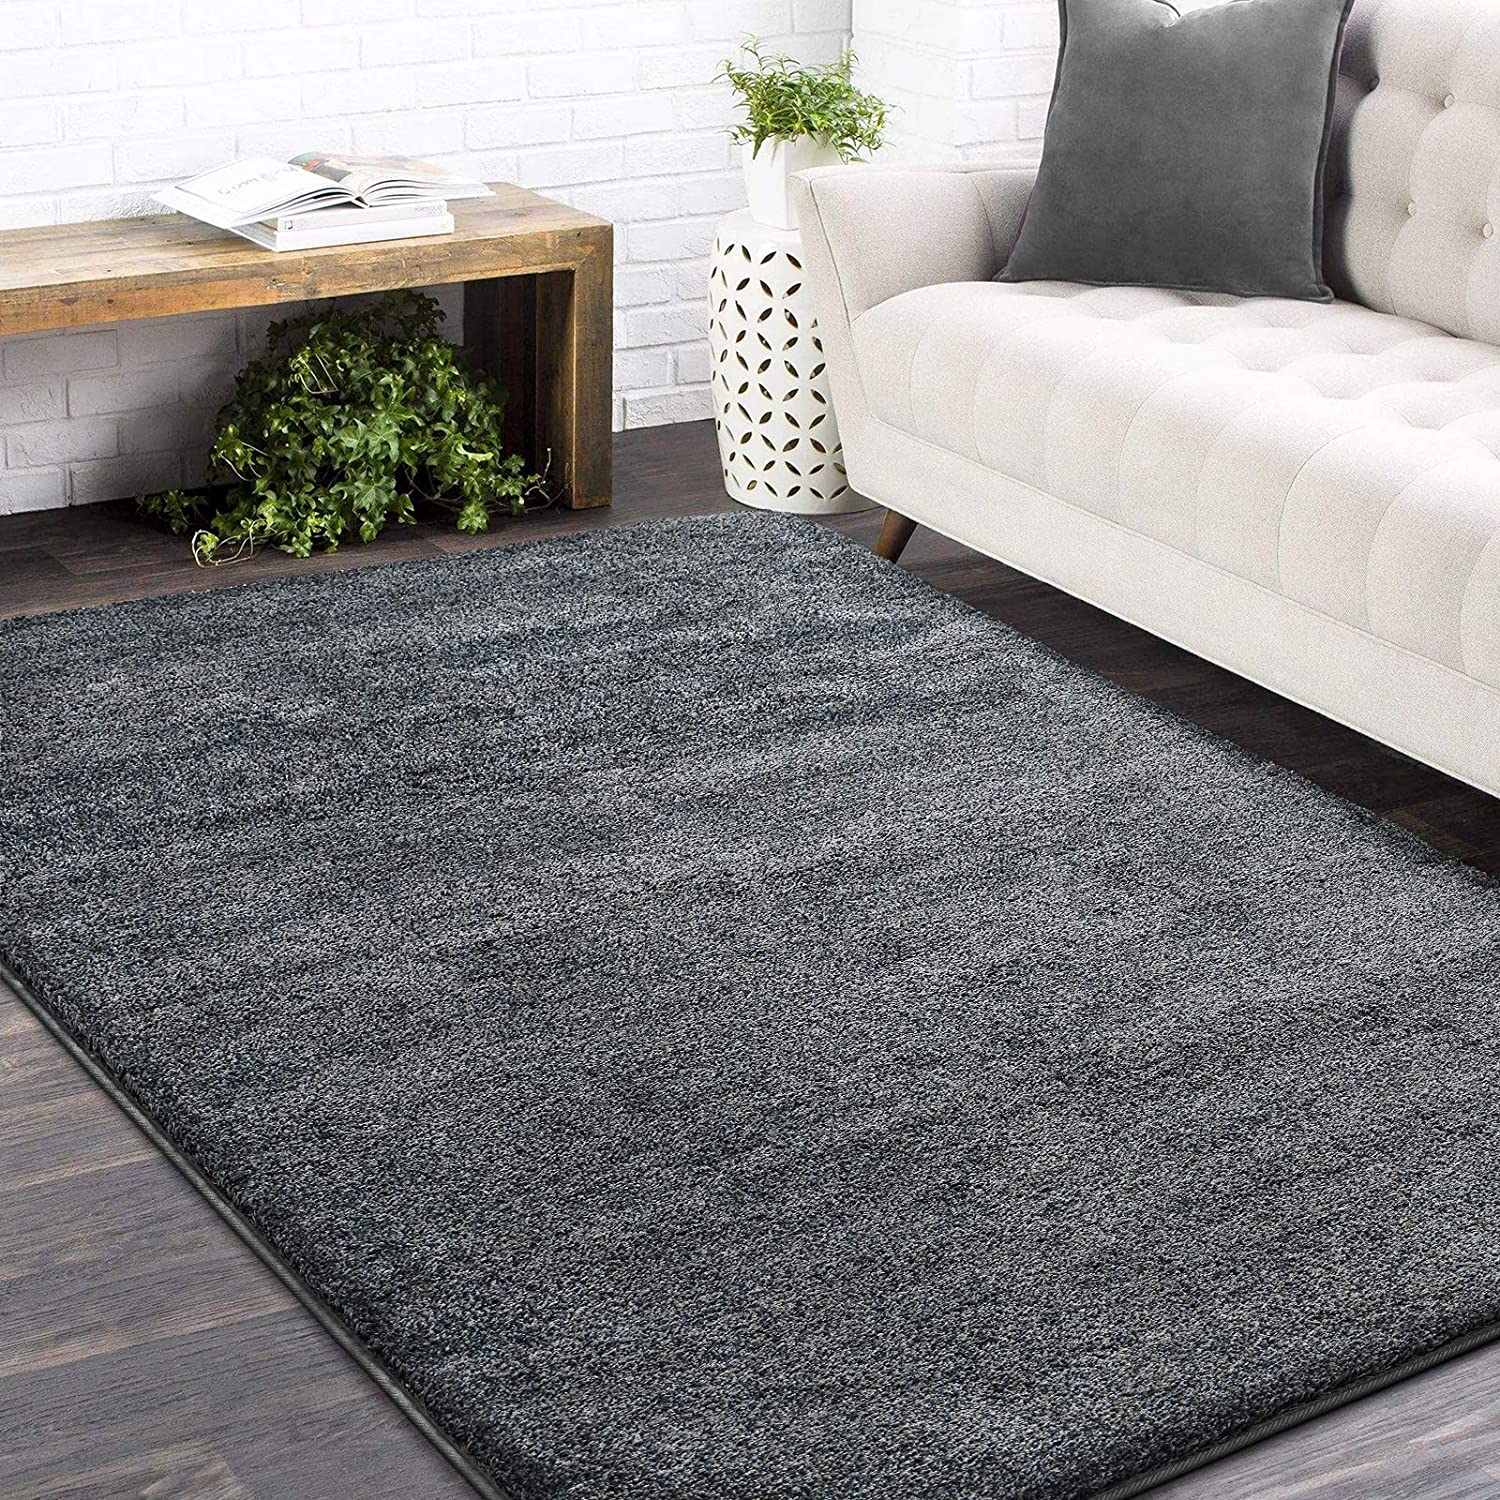 Color&Geometry Area Rugs, 5 x 7 Feet Cozy Comfy Machine Washable Non-Slip Home Decor Floor Rug Carpet for Bedroom, Kids Room, Baby Room, Girls Room, and Office, Grey